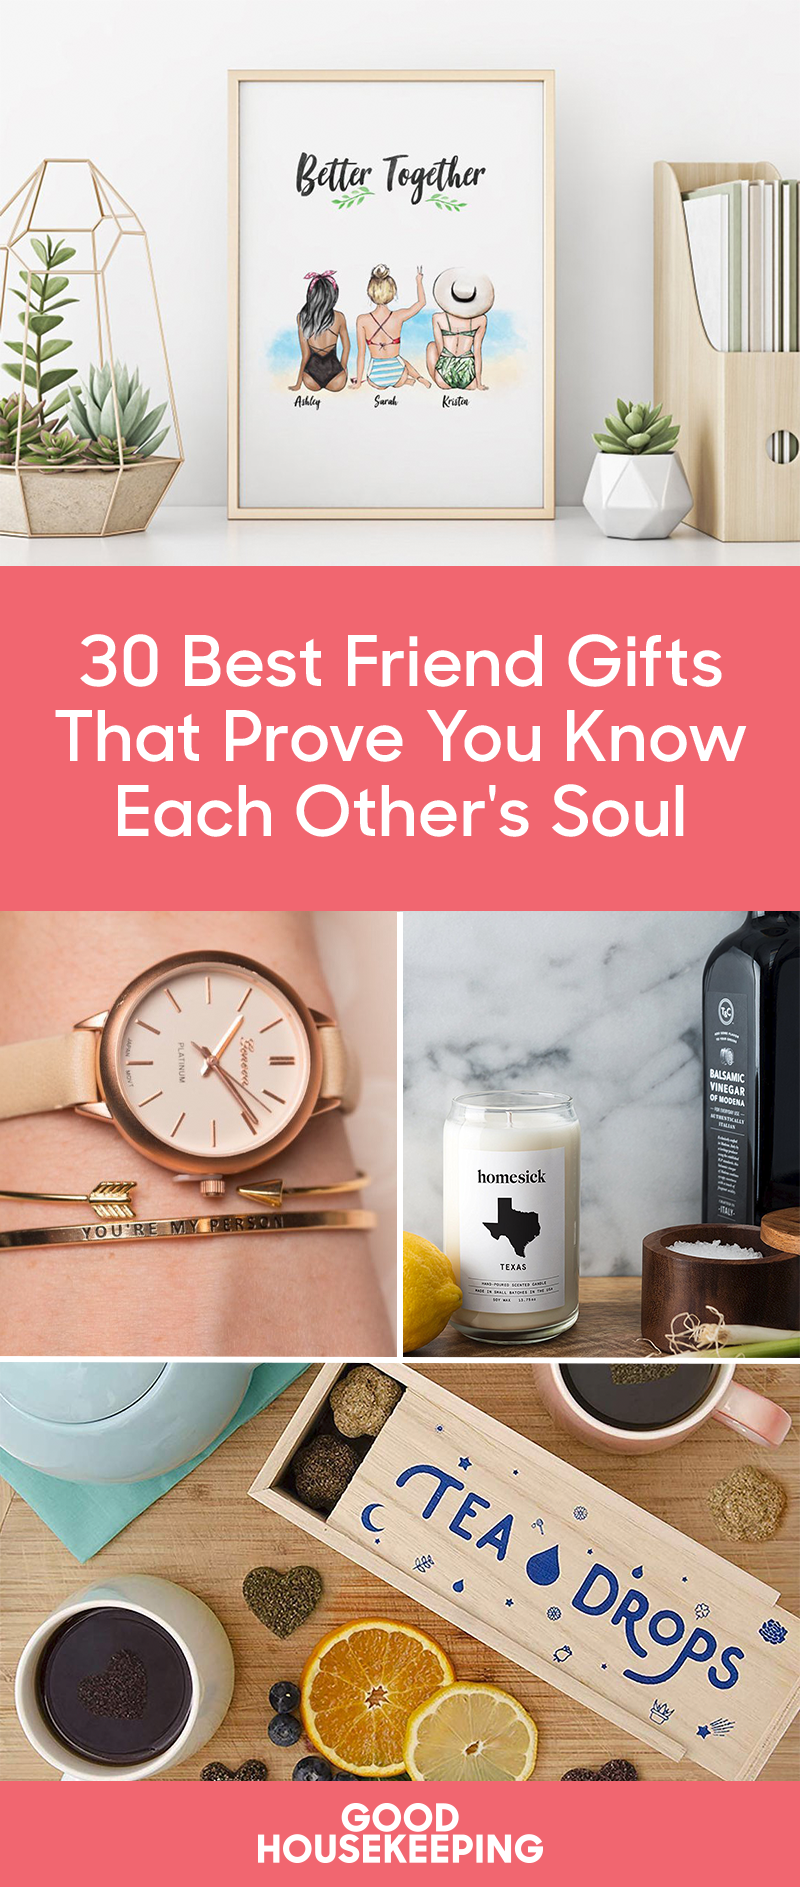 30 Best Friend Gift Ideas